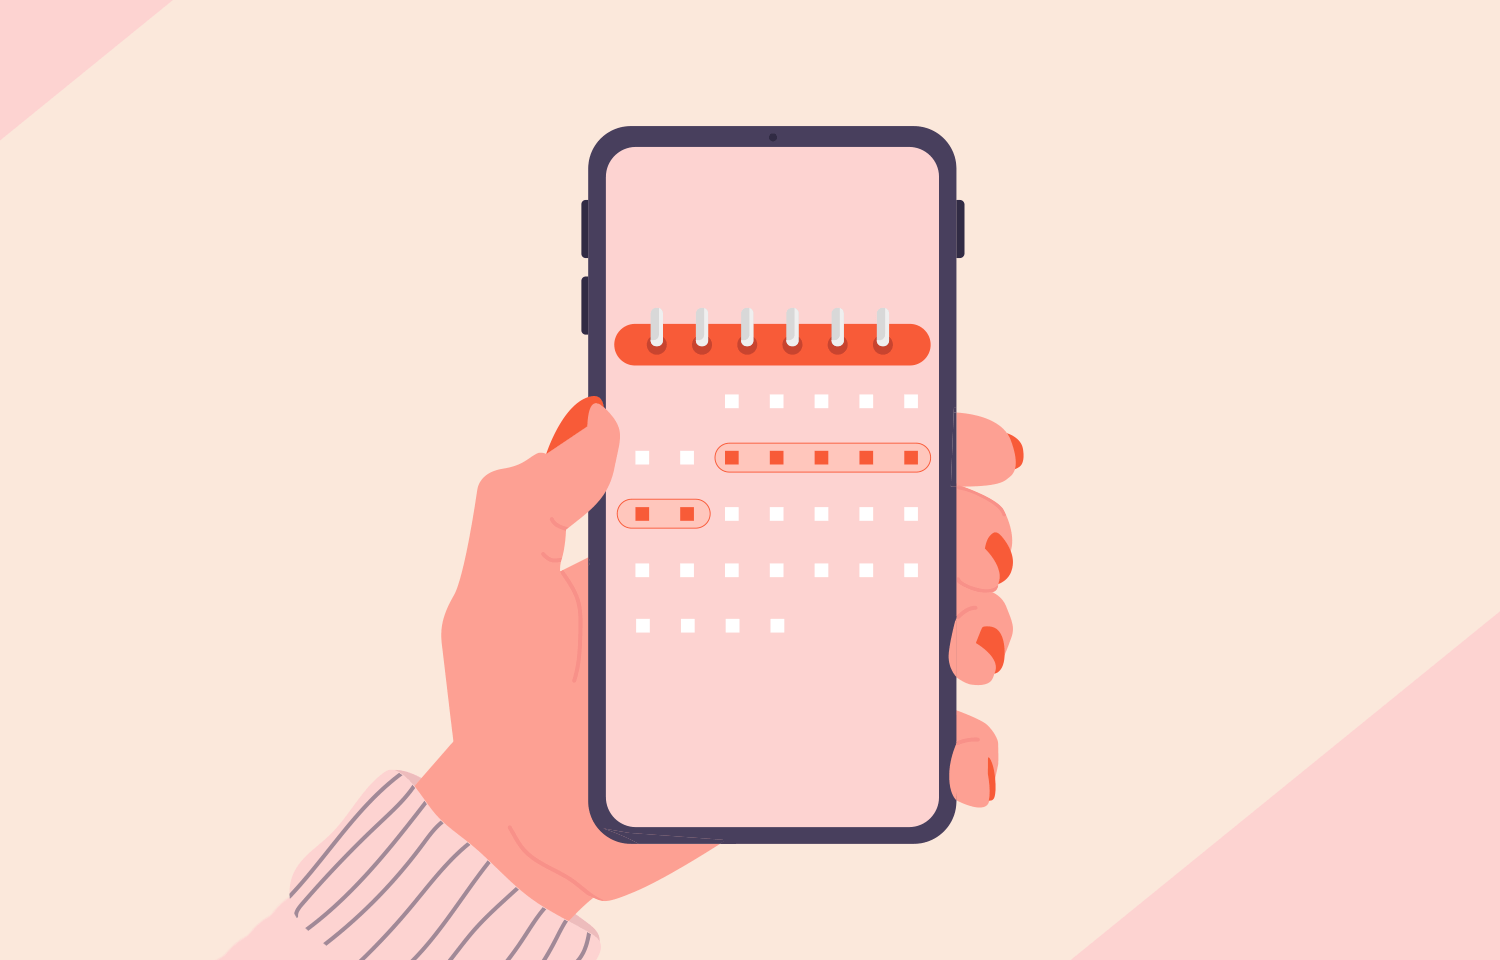 Best shared calendar app for couples iphone and android